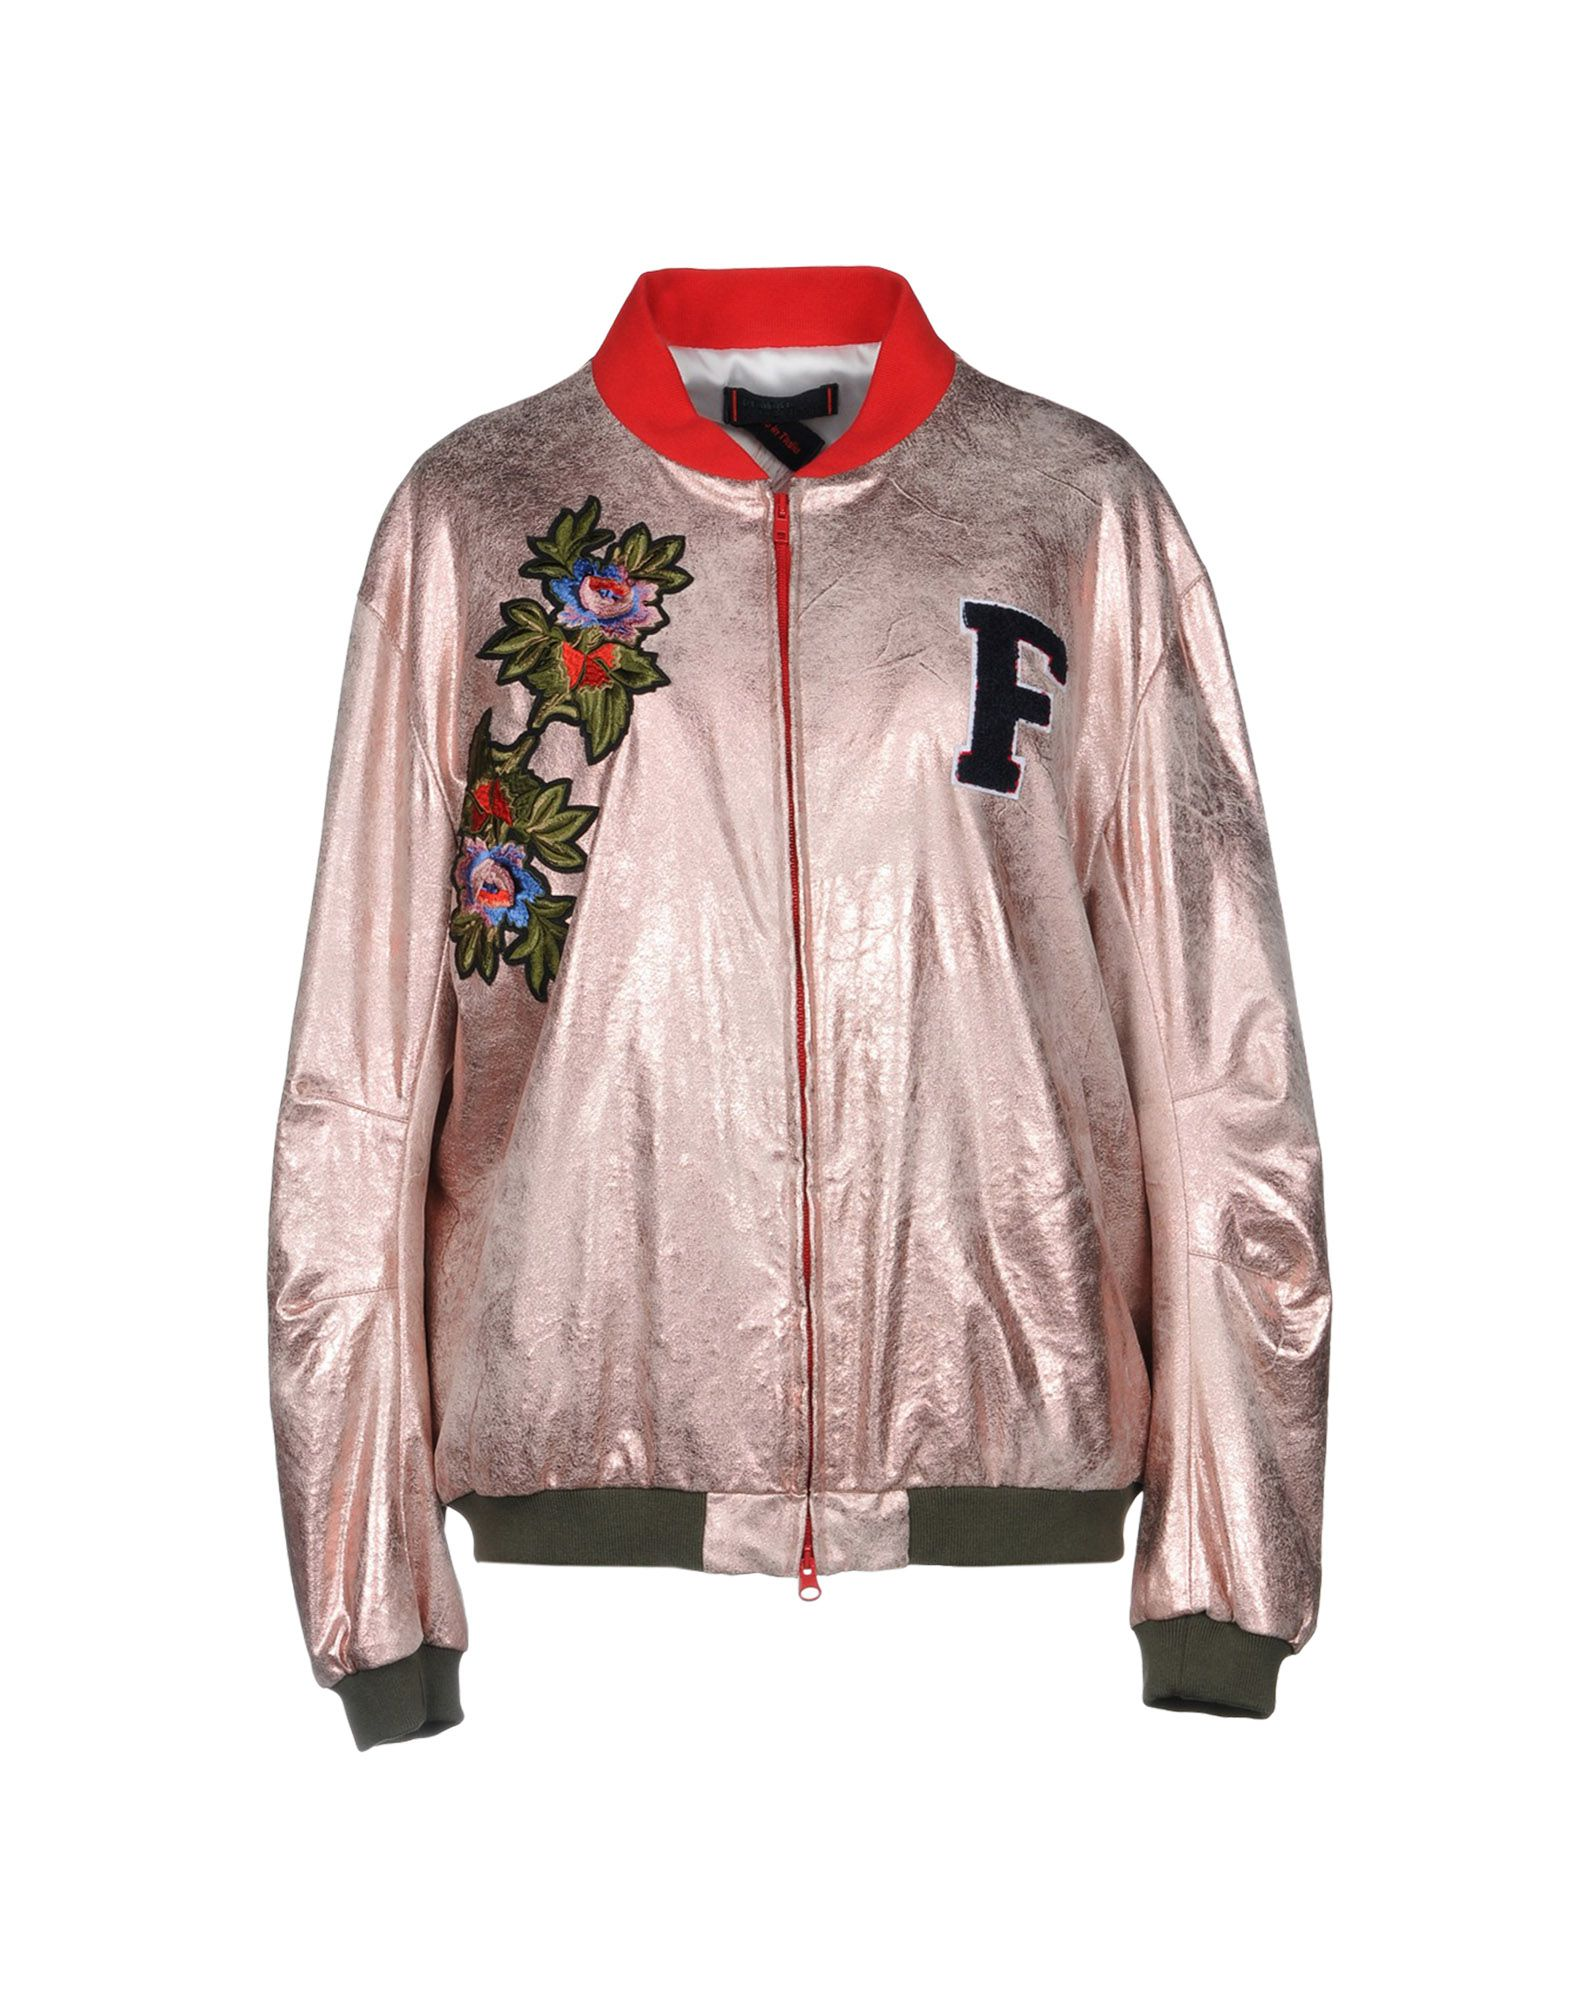 FEMME BY MICHELE ROSSI Bomber in Pink